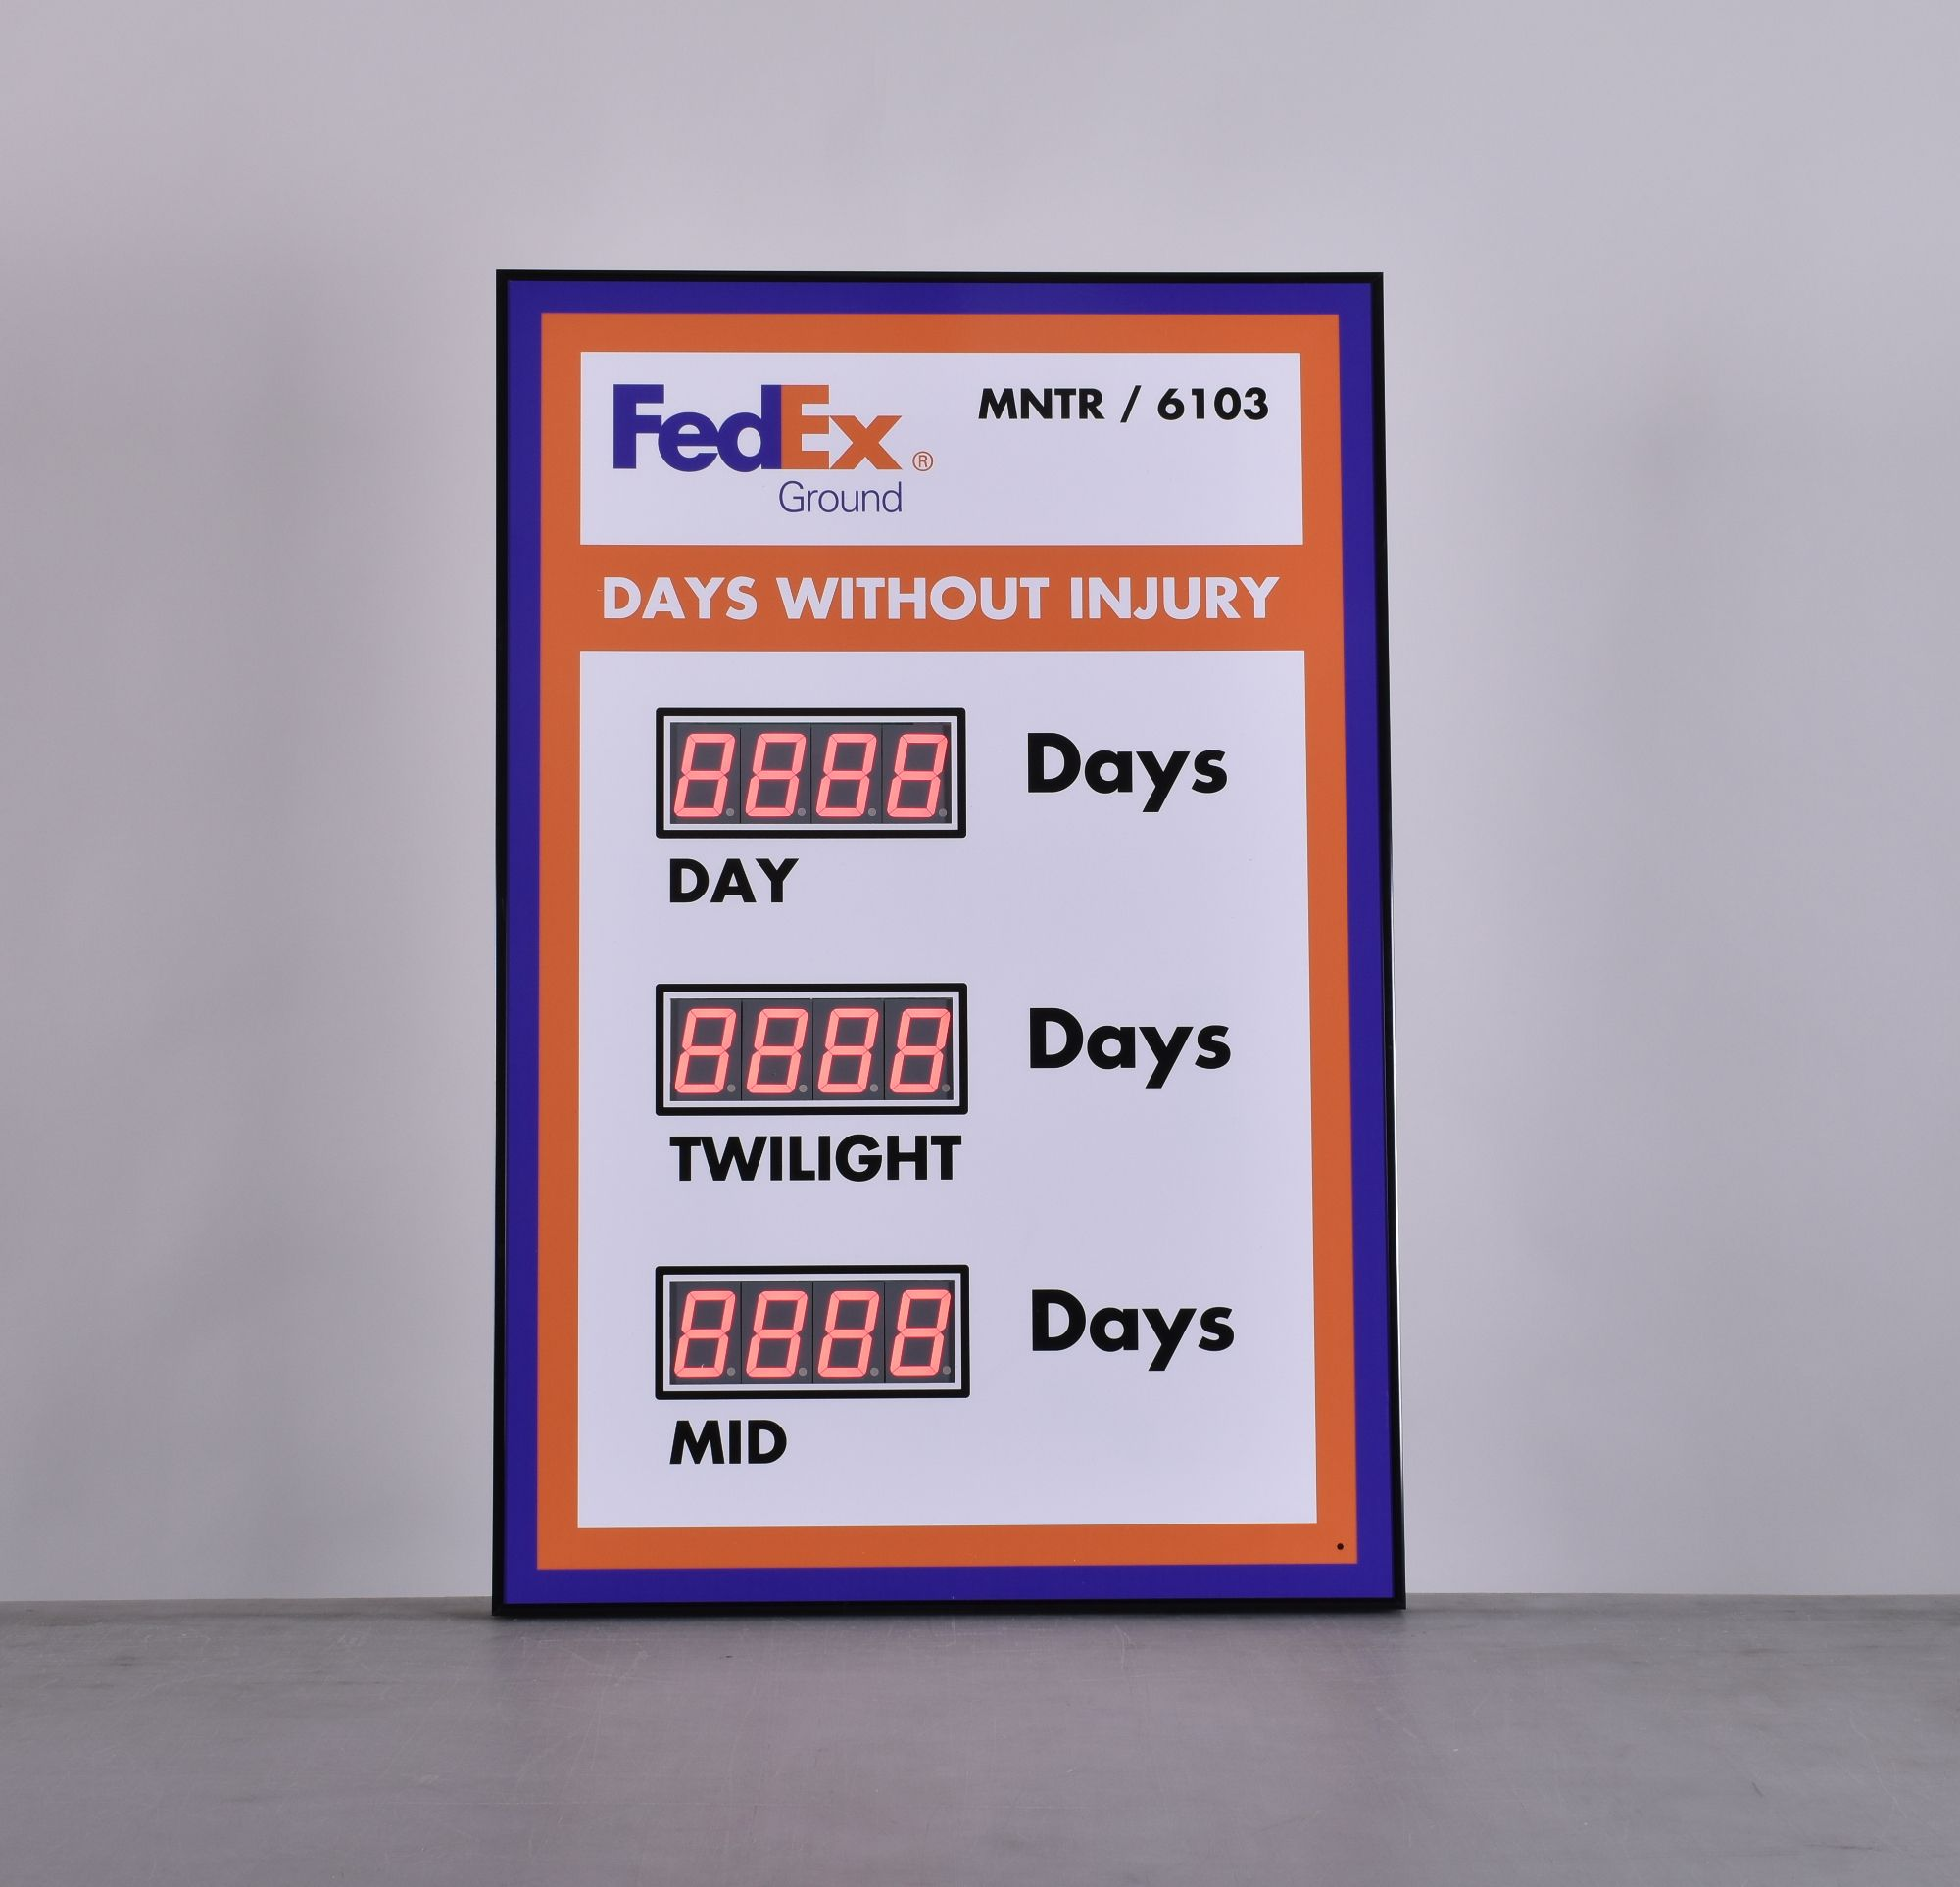 Fedex Delivery Days >> Check Out How Fedex Ground Mntl 6104 Is Tracking Days